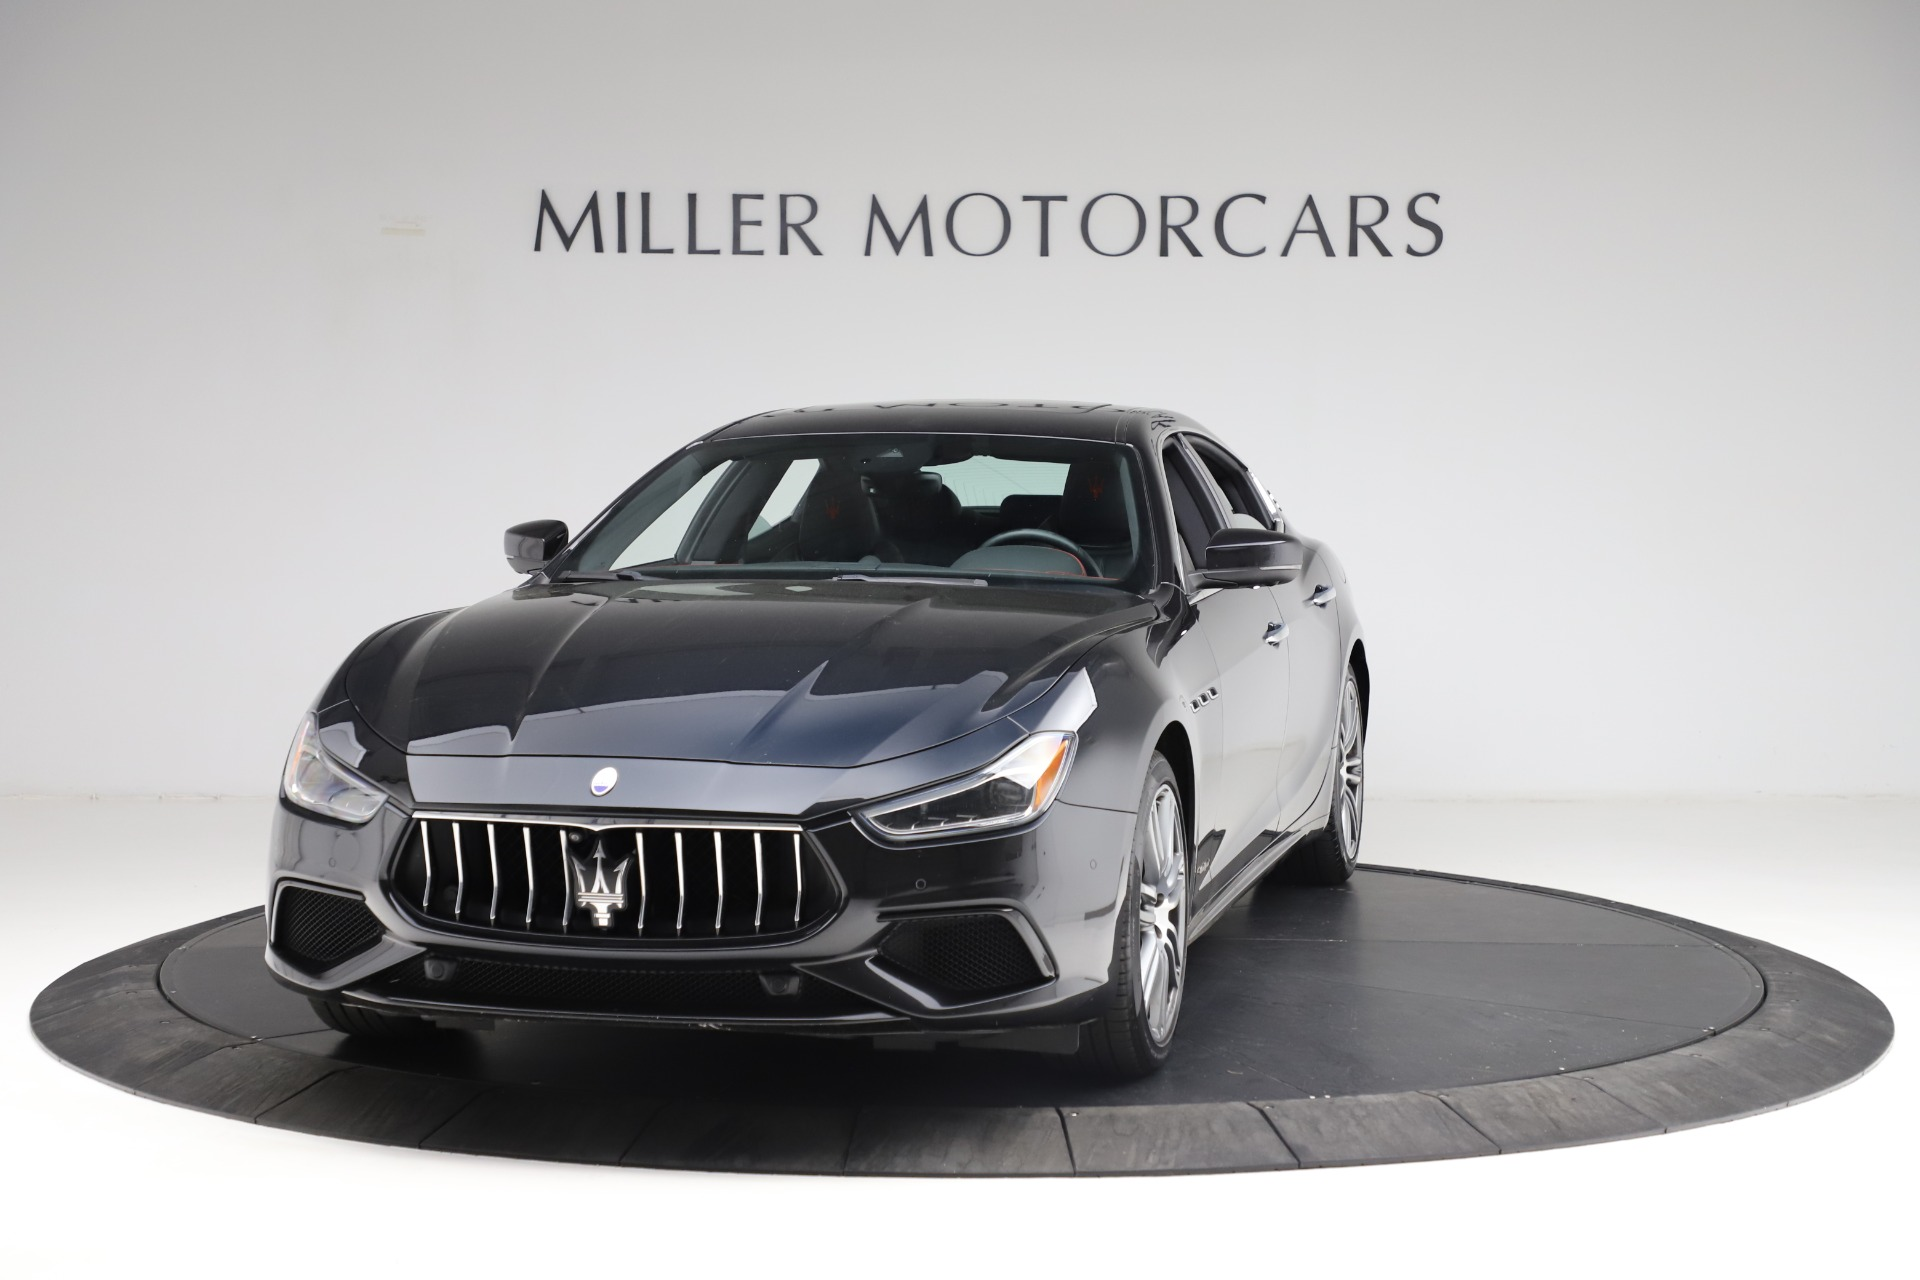 Used 2018 Maserati Ghibli S Q4 Gransport for sale $55,900 at Pagani of Greenwich in Greenwich CT 06830 1